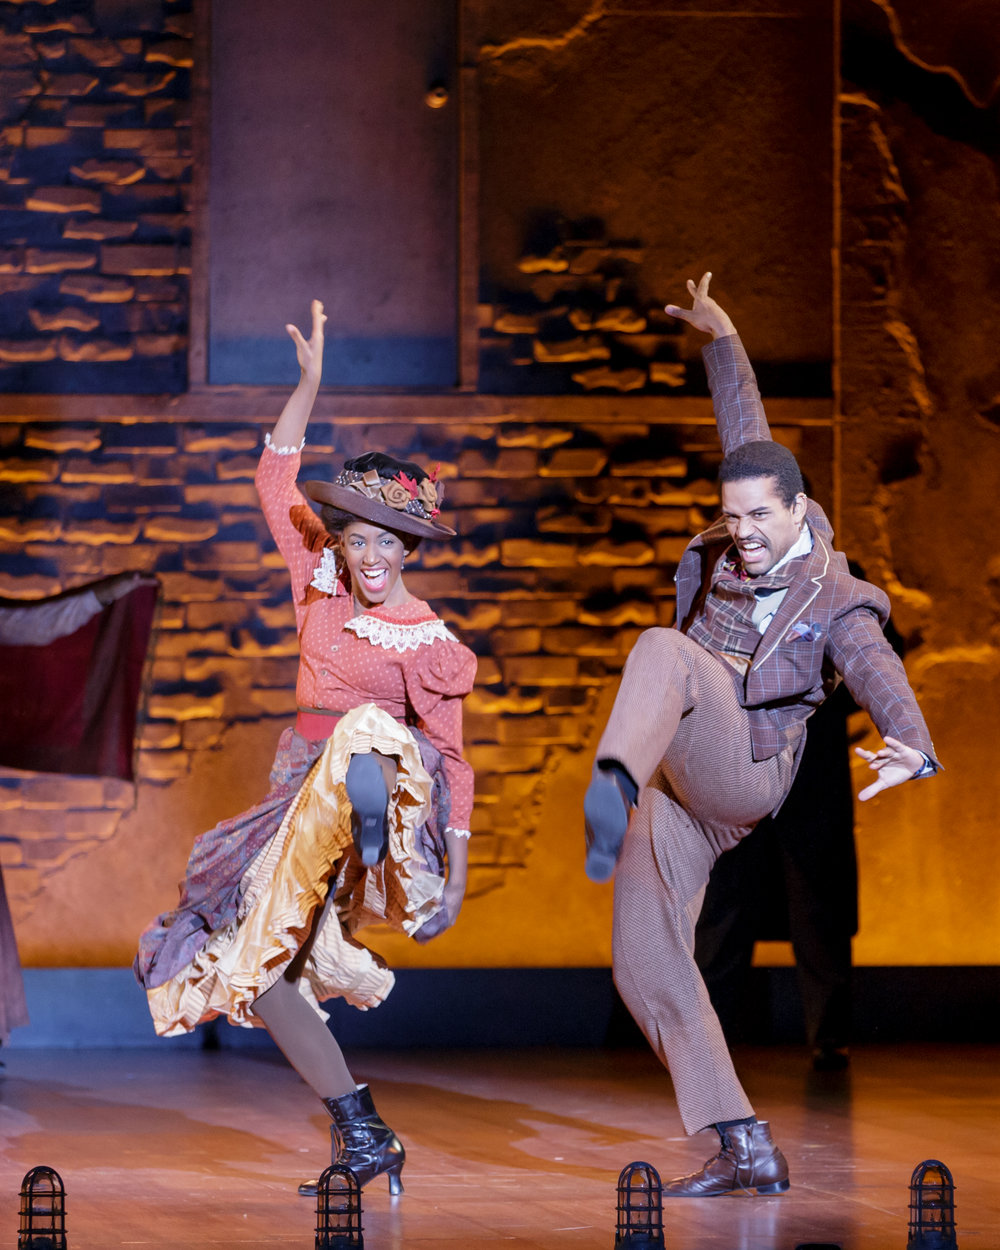 Lauren Du Pree as Harlem Woman and Richard Peacock as Harlem Man in Ragtime - Photo Credit Mark Kitaoka.jpg